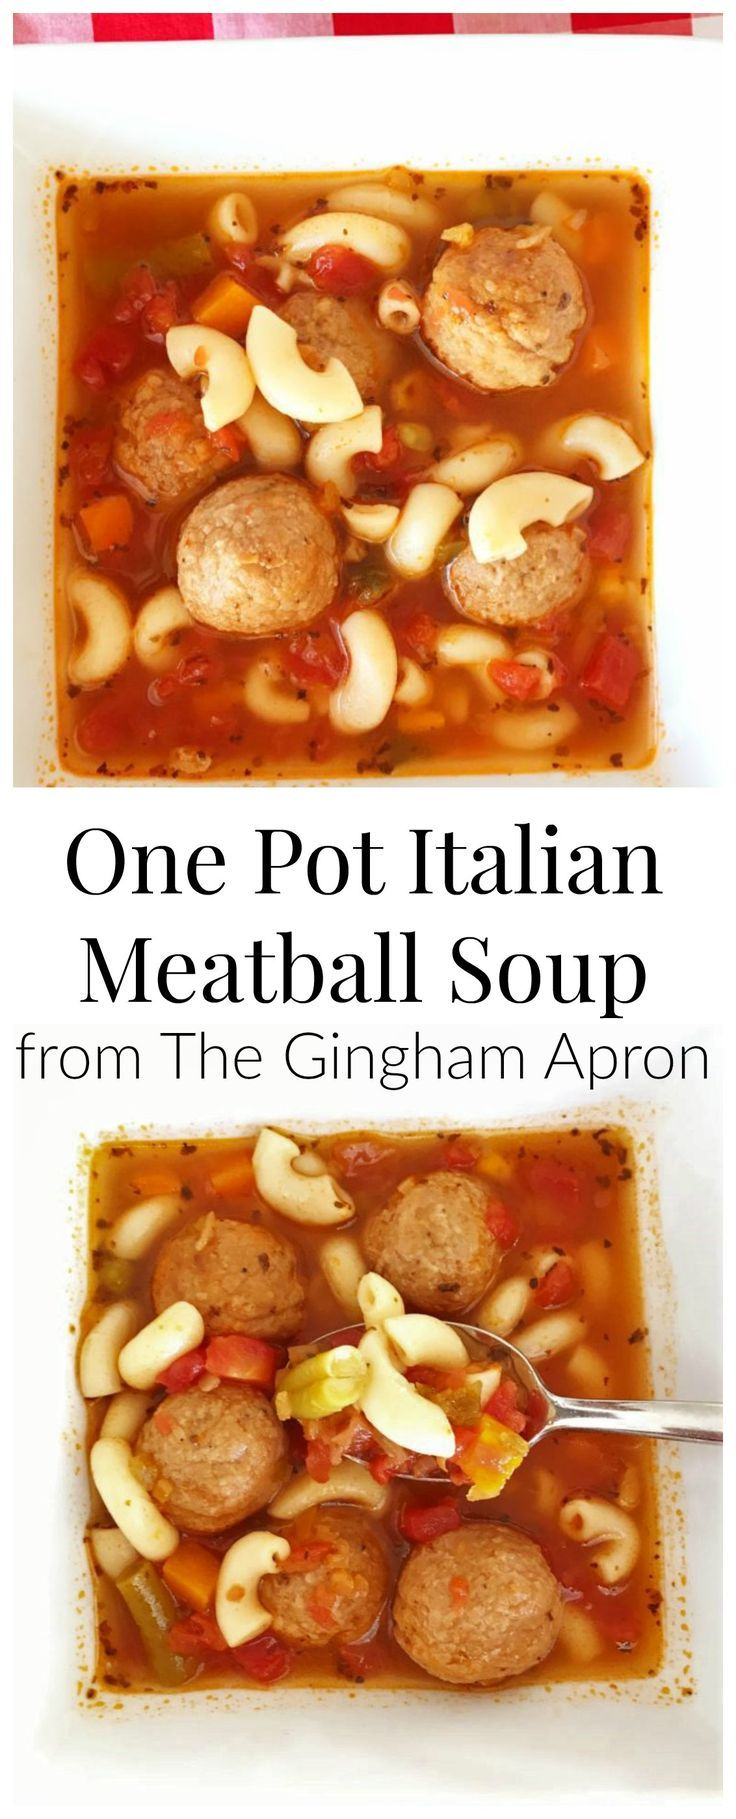 One Pot Italian Meatball Soup- quick, easy, and delicious!